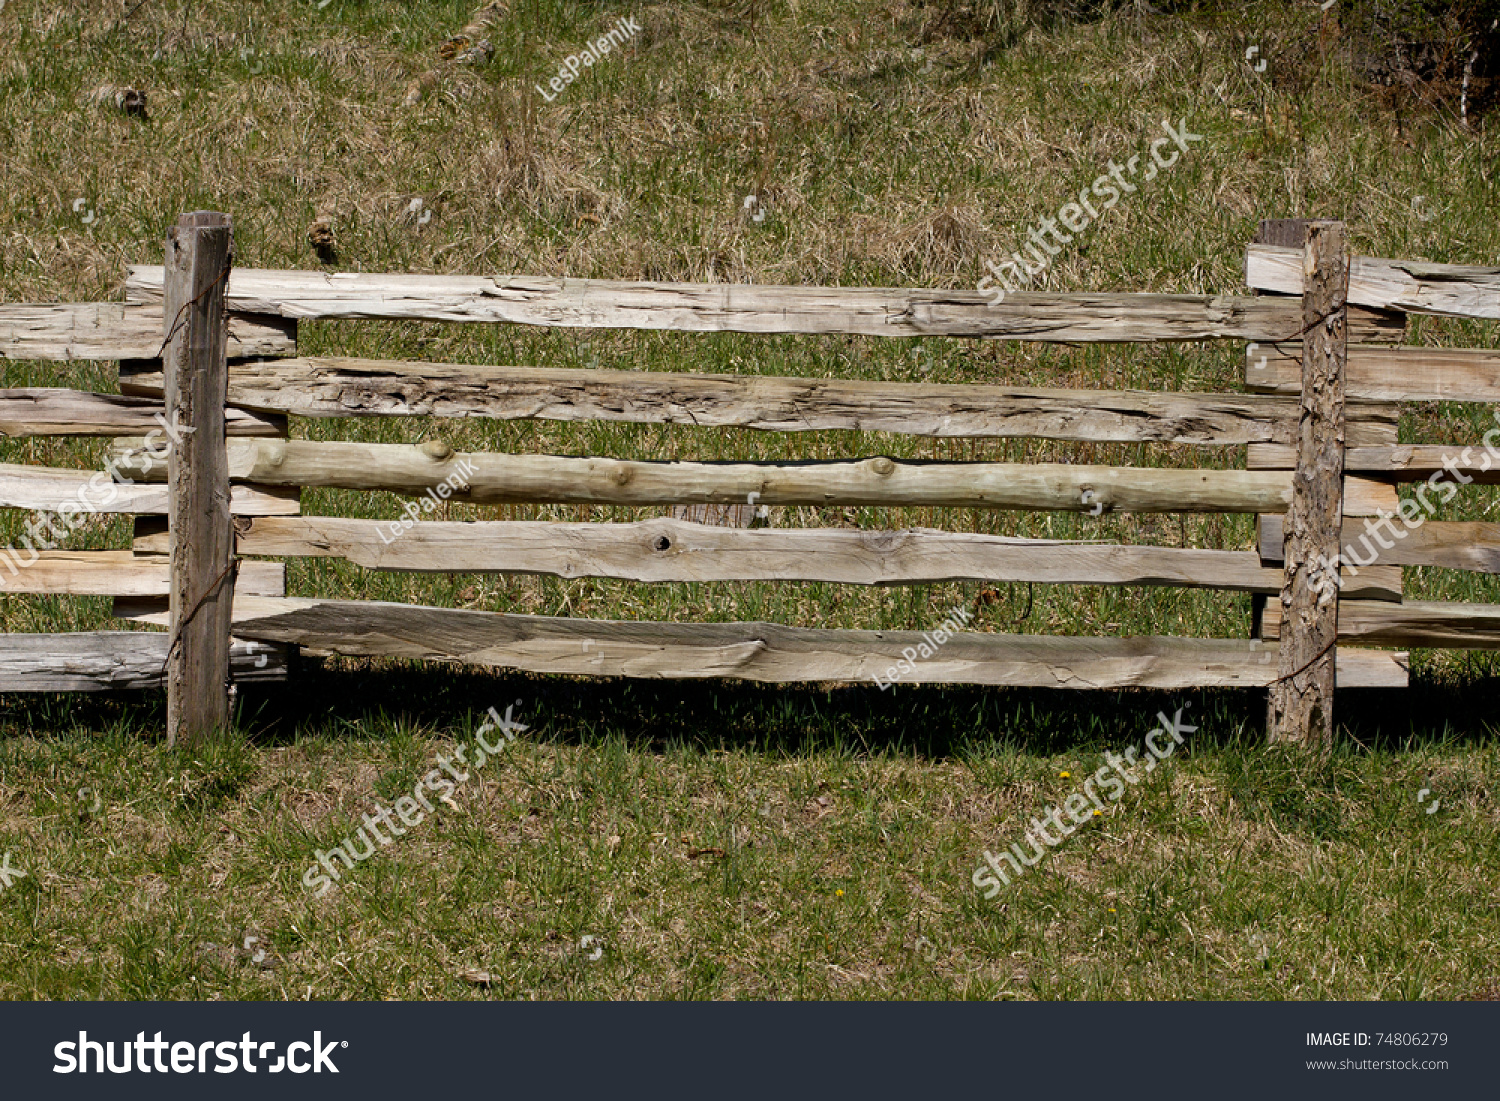 Old wooden rail fence stock photo 74806279 shutterstock old wooden rail fence baanklon Gallery